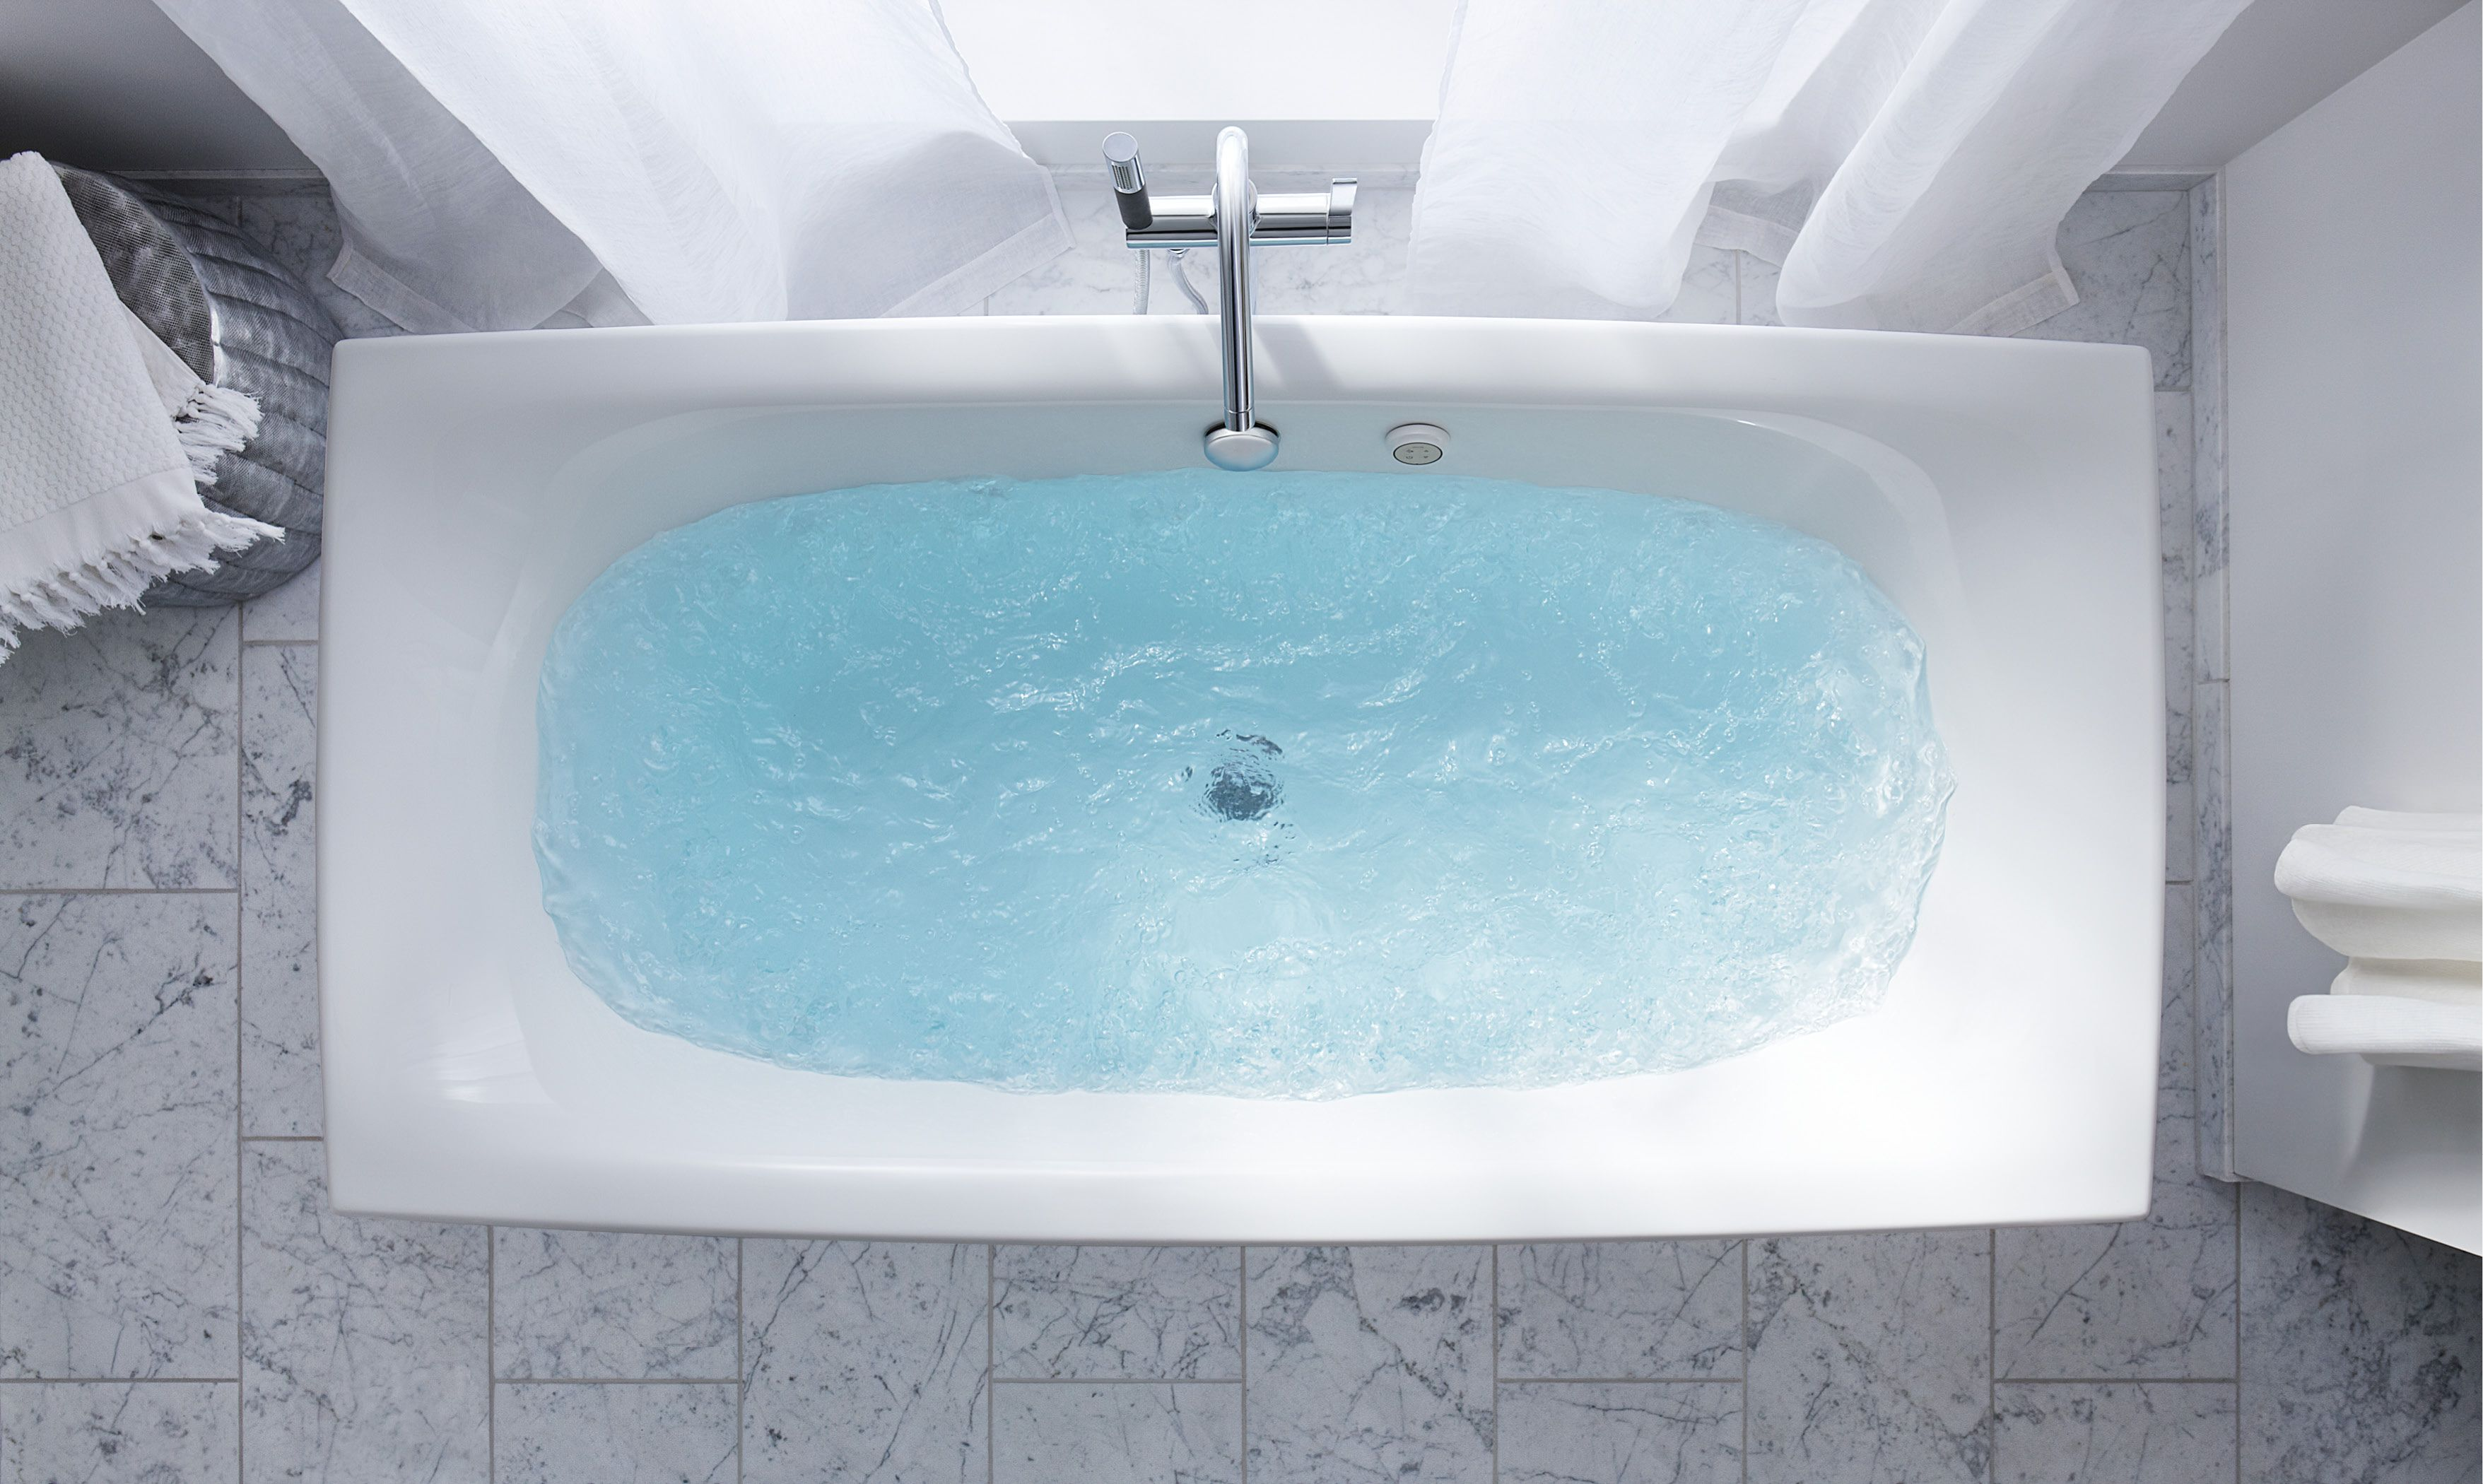 Our Bubblemassage Air Bath Hydrotherapy Brings A Whole New Meaning